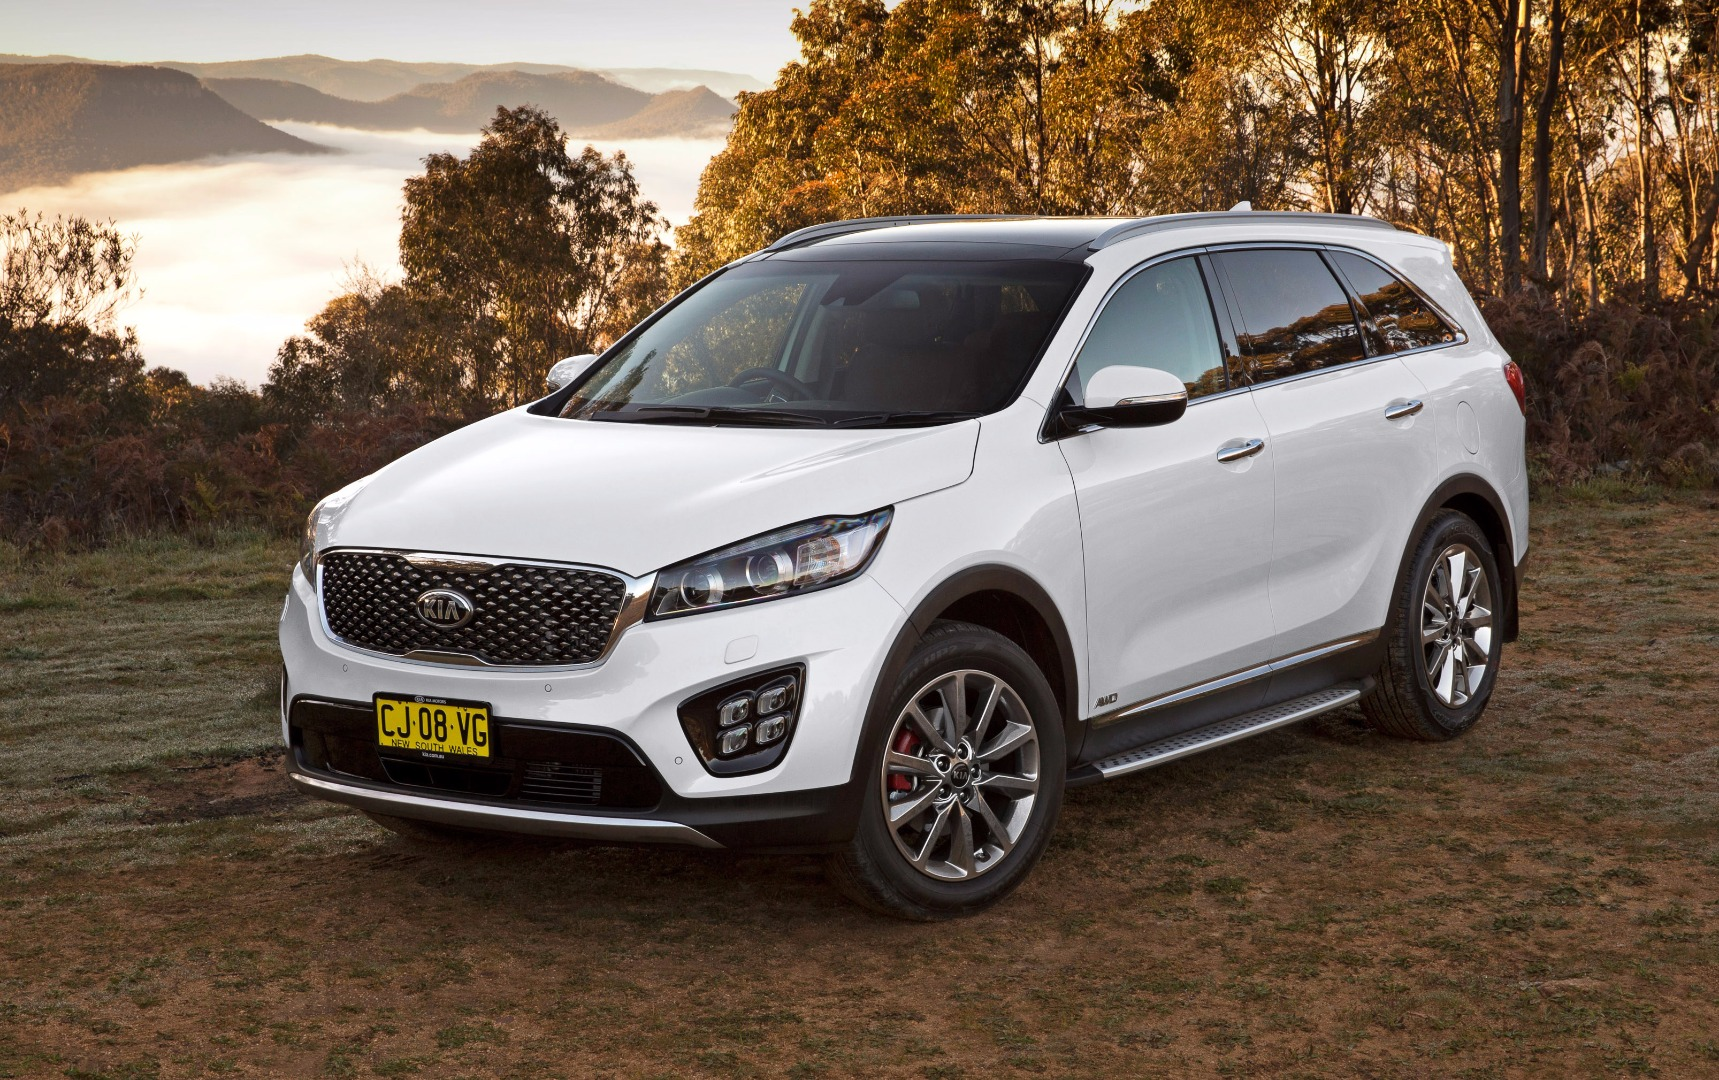 News - Updated 2017 Kia Sorento Adds GT-Line Flagship, Extra Tech